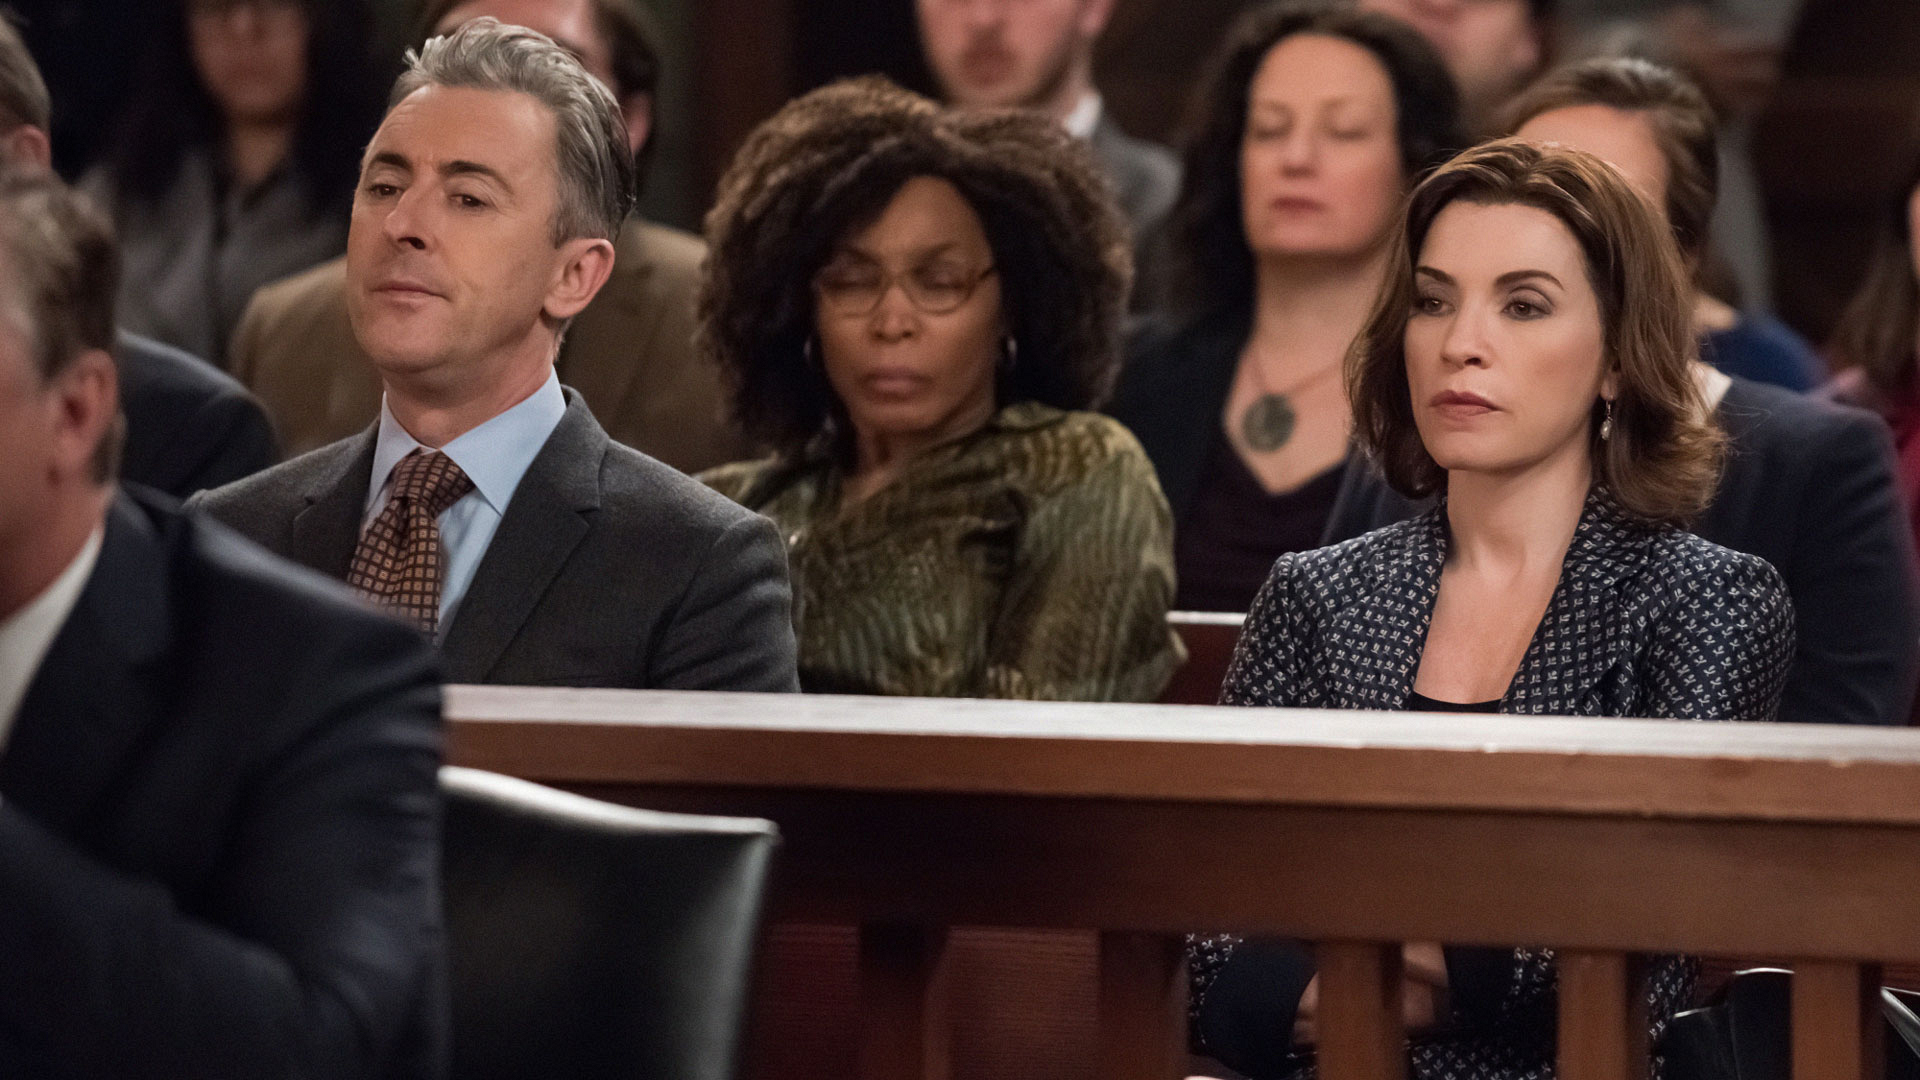 Eli Gold and Alicia Florrick look solemn in the courtroom gallery.